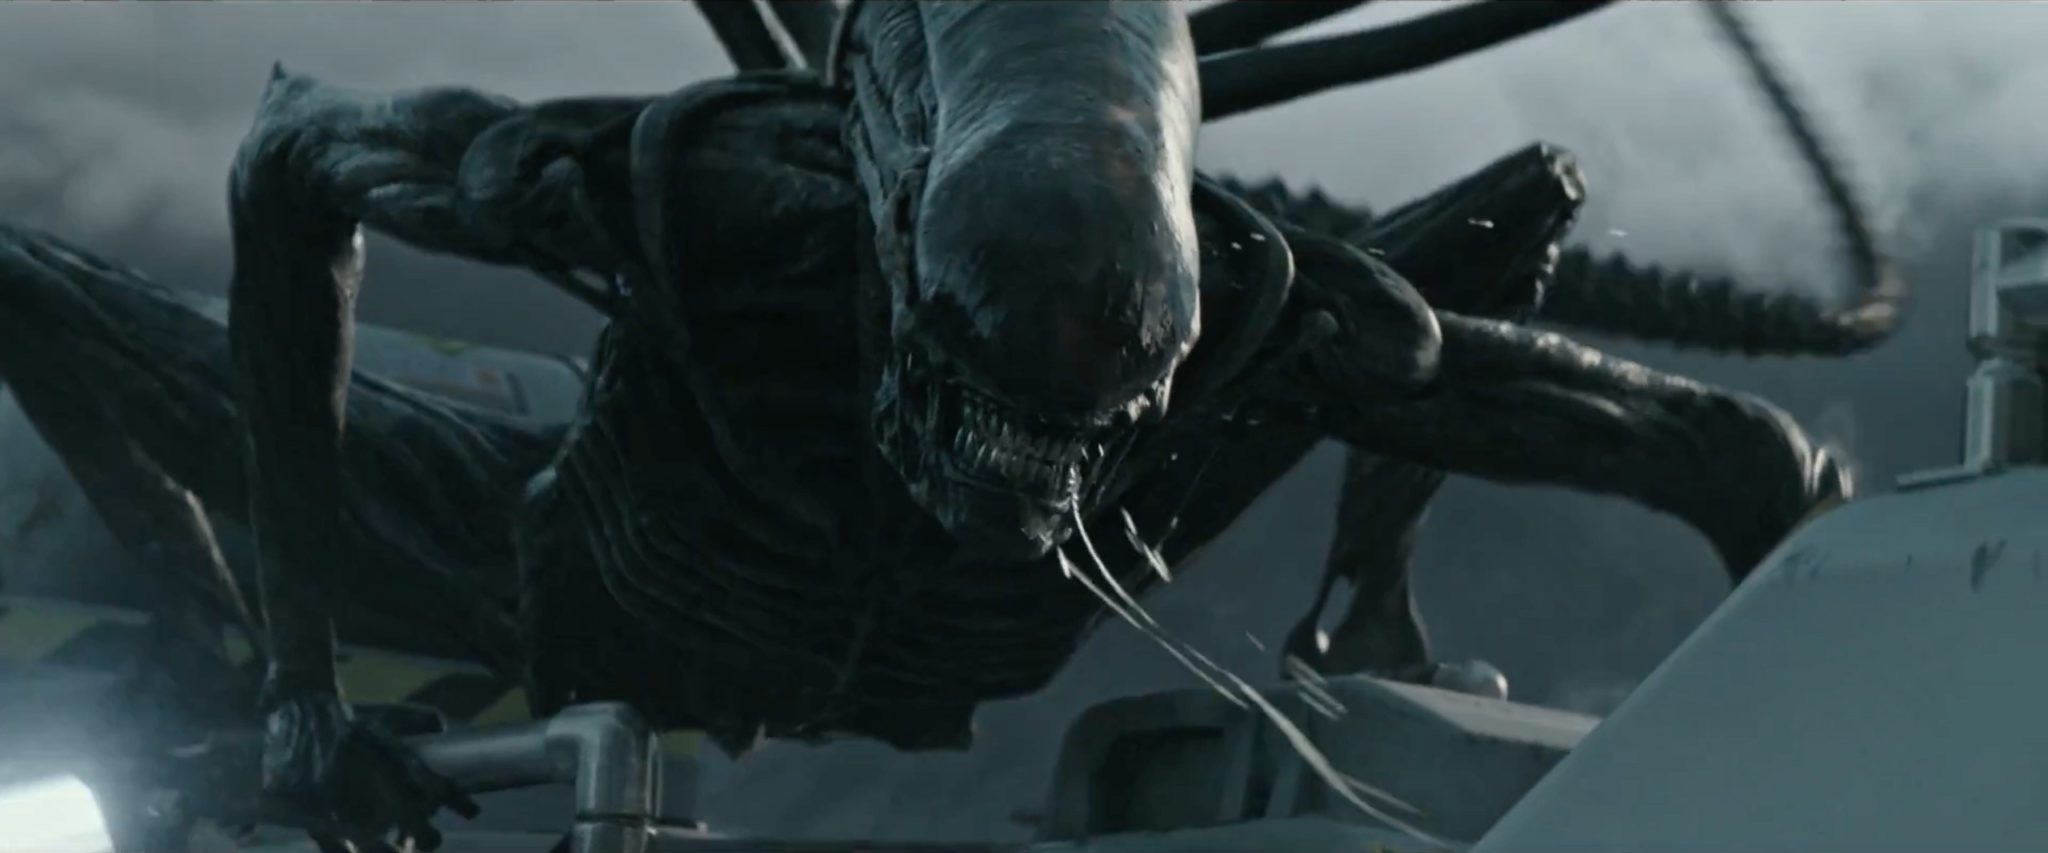 'Alien: Covenant' is a return to form that is sure to divide fans